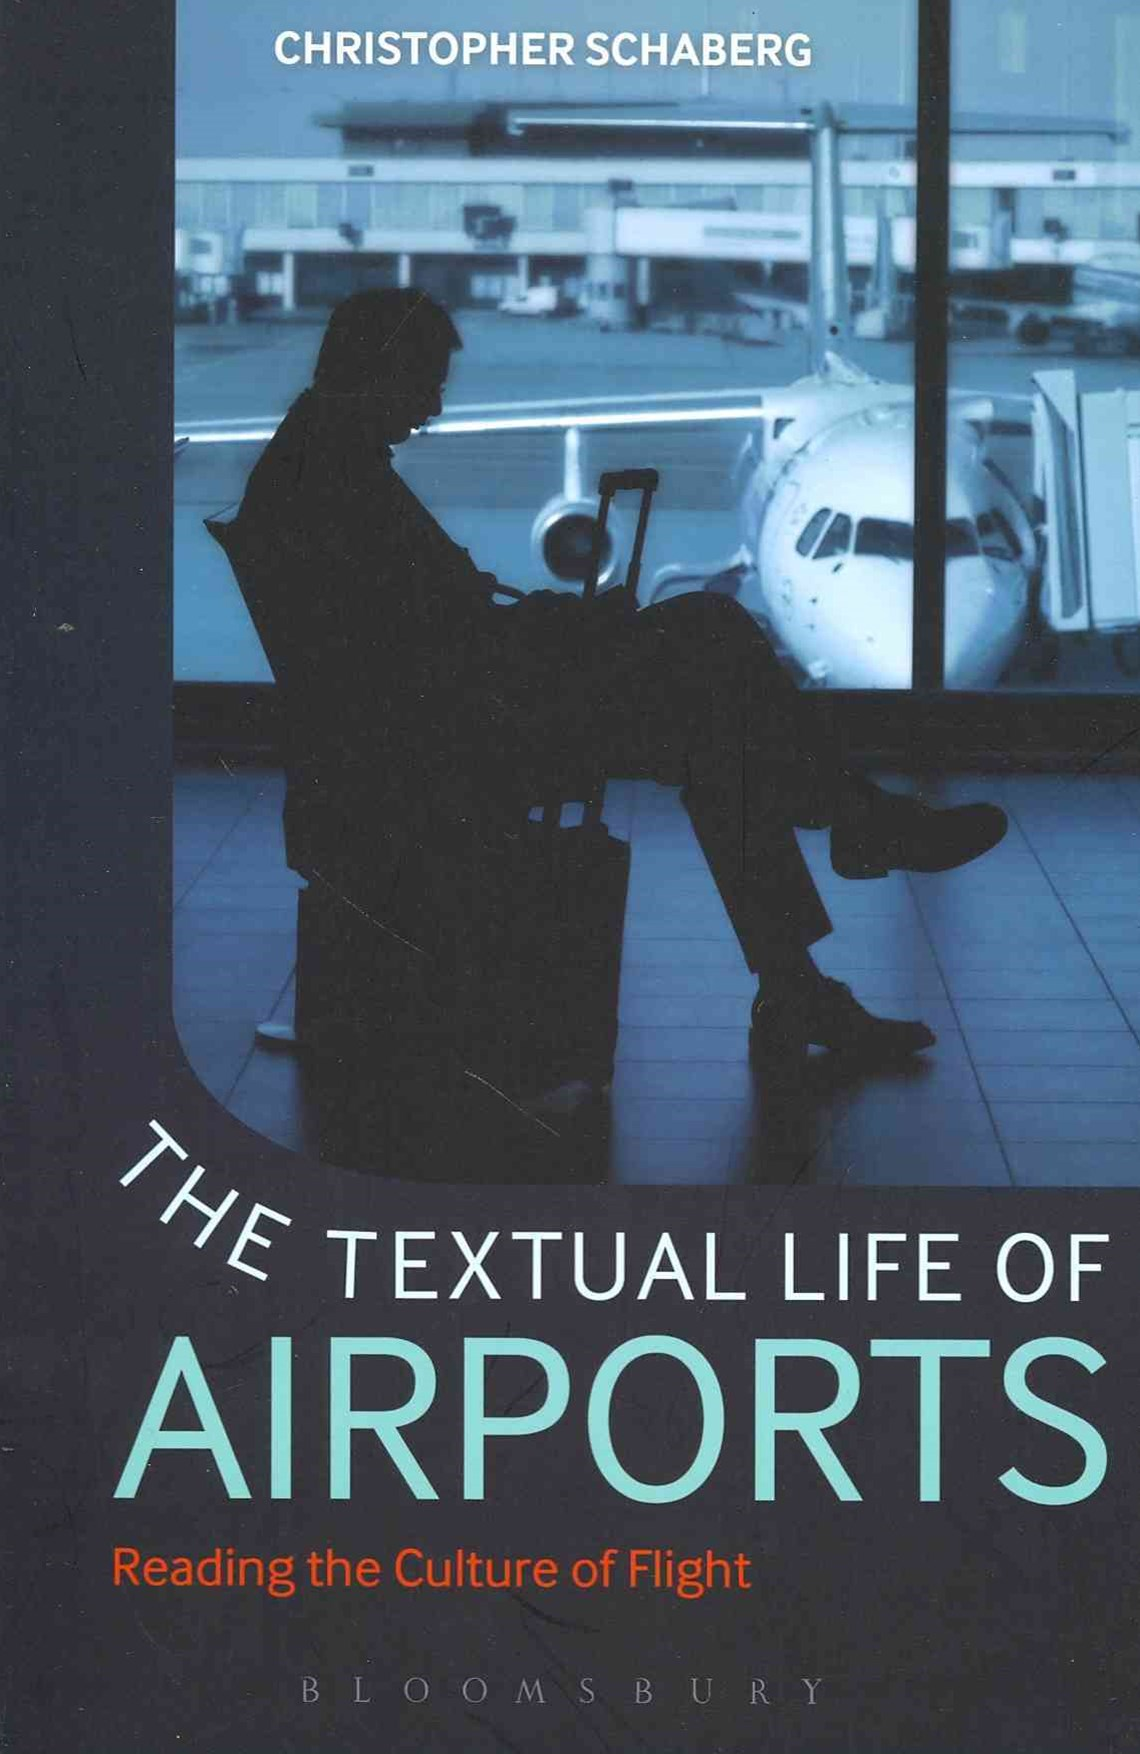 Textual Life of Airports